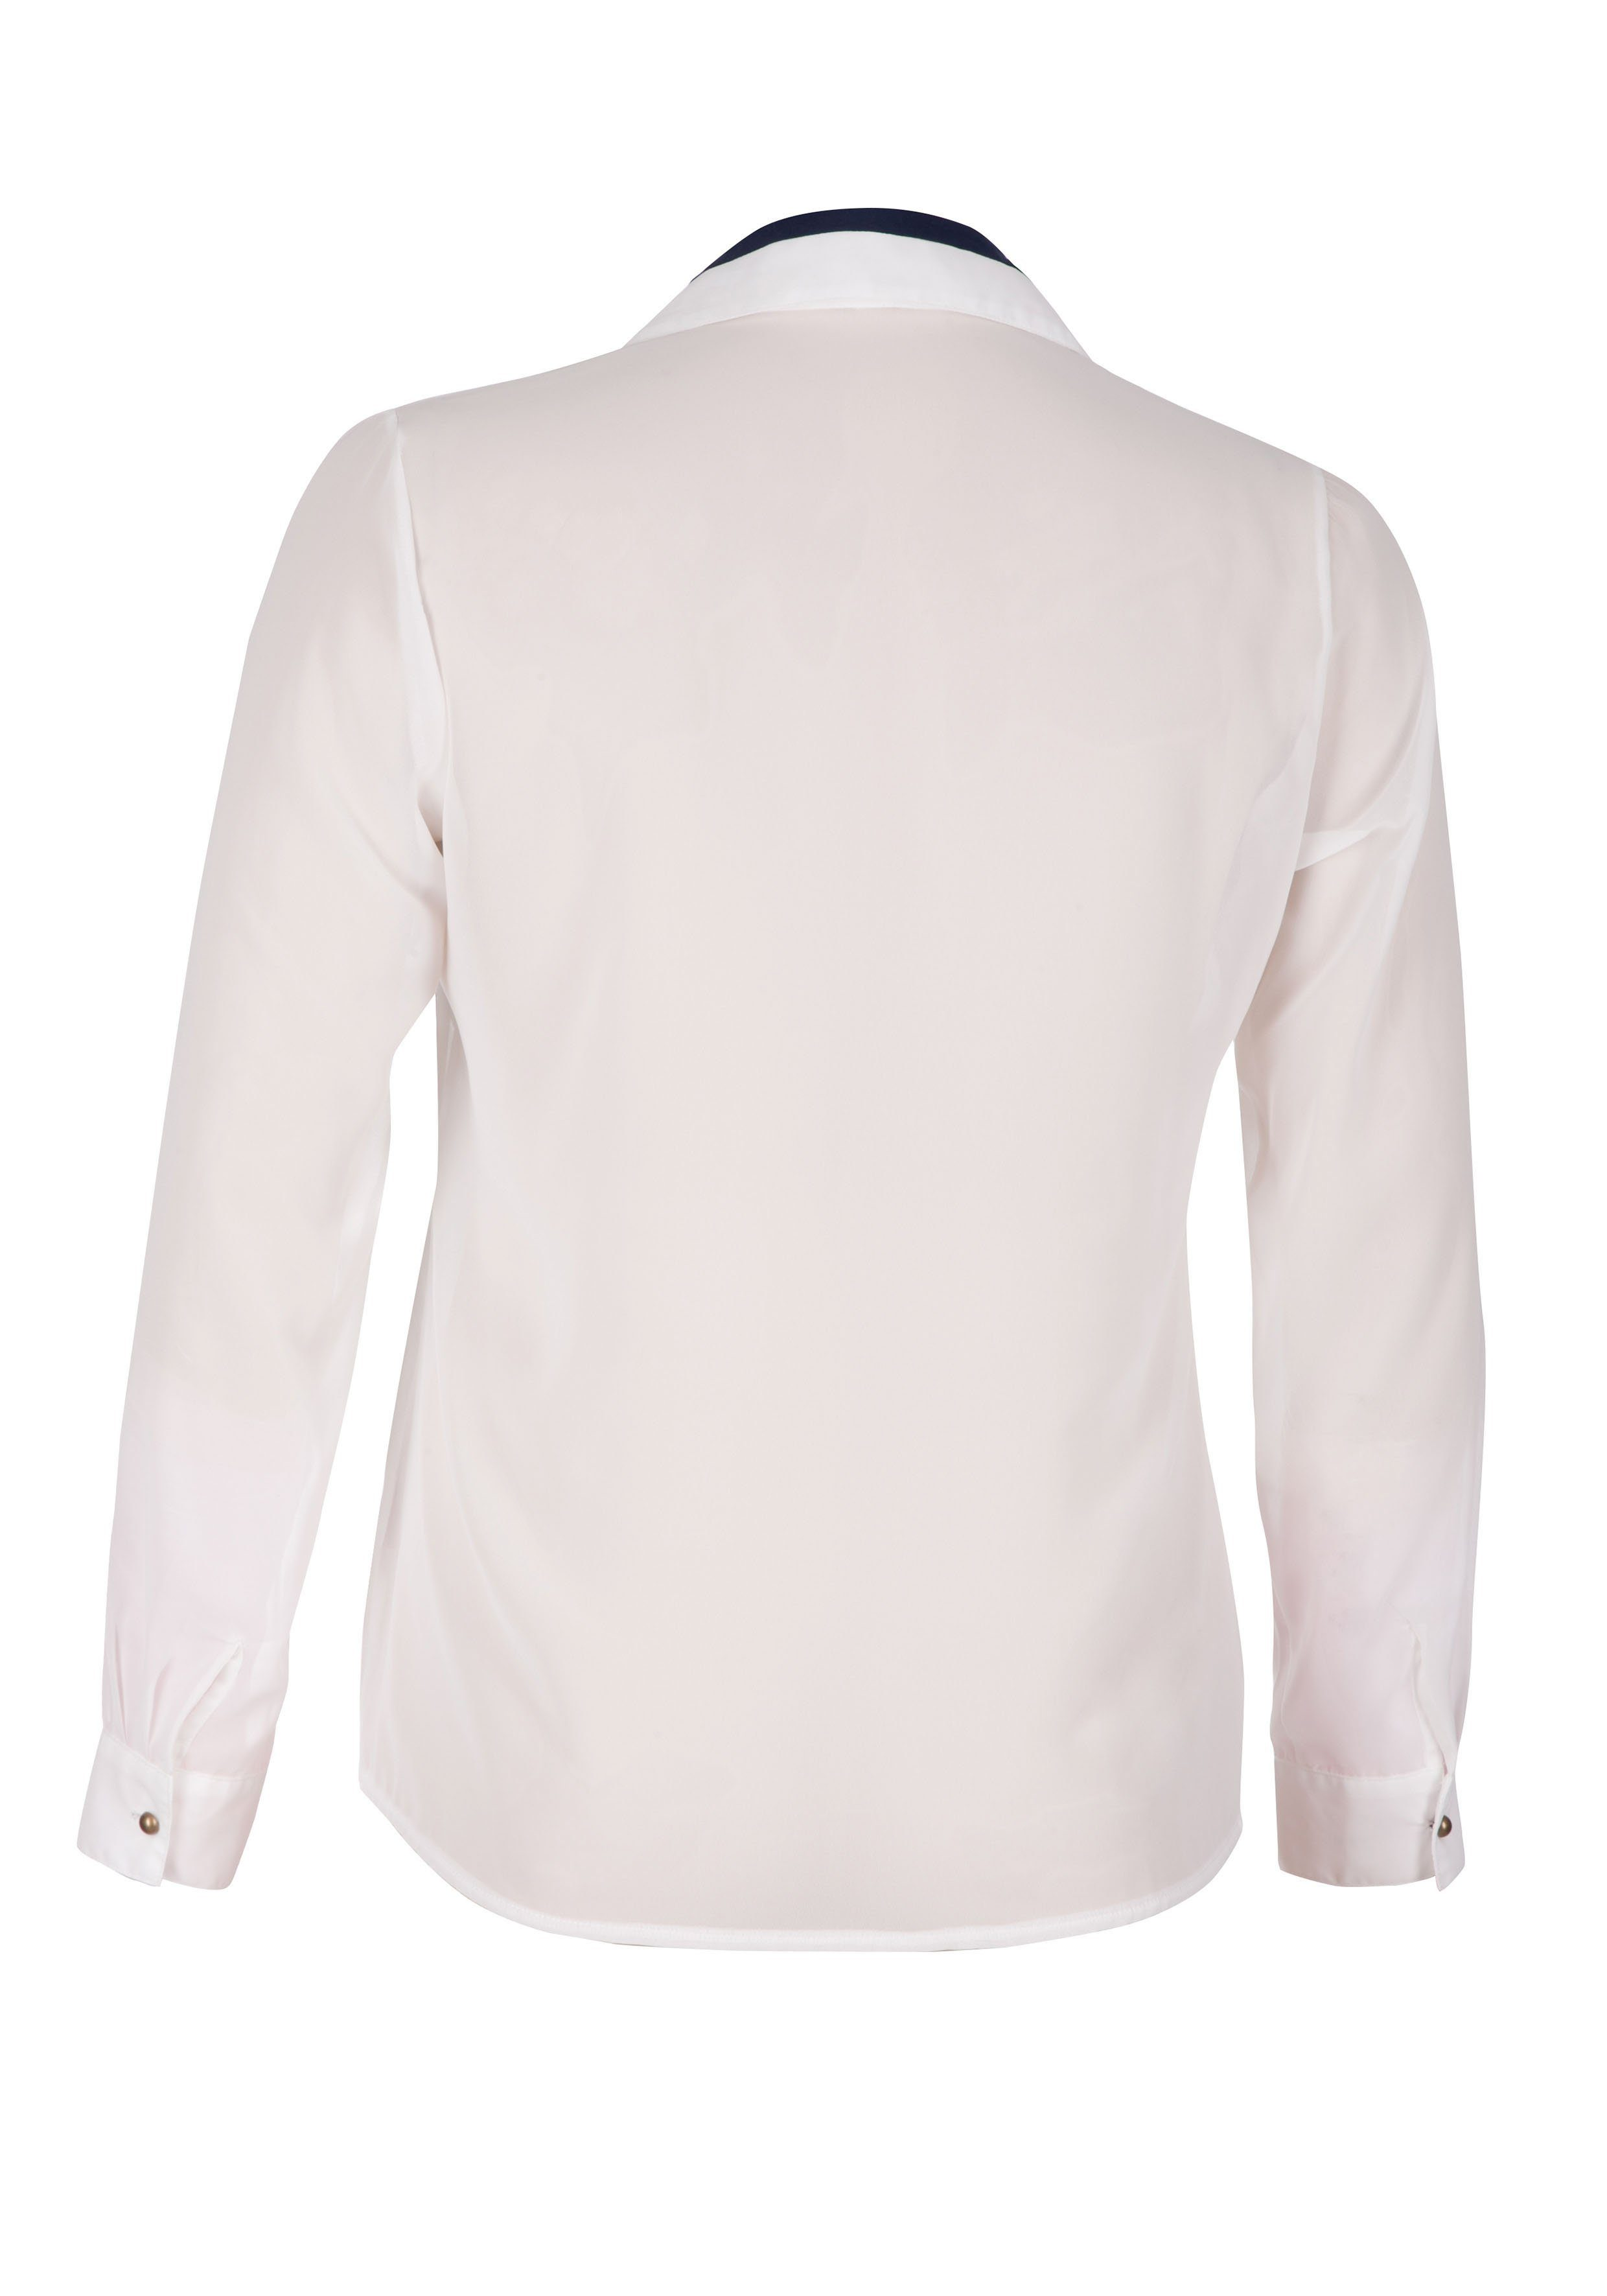 sheegotit sheego trend blouse wit